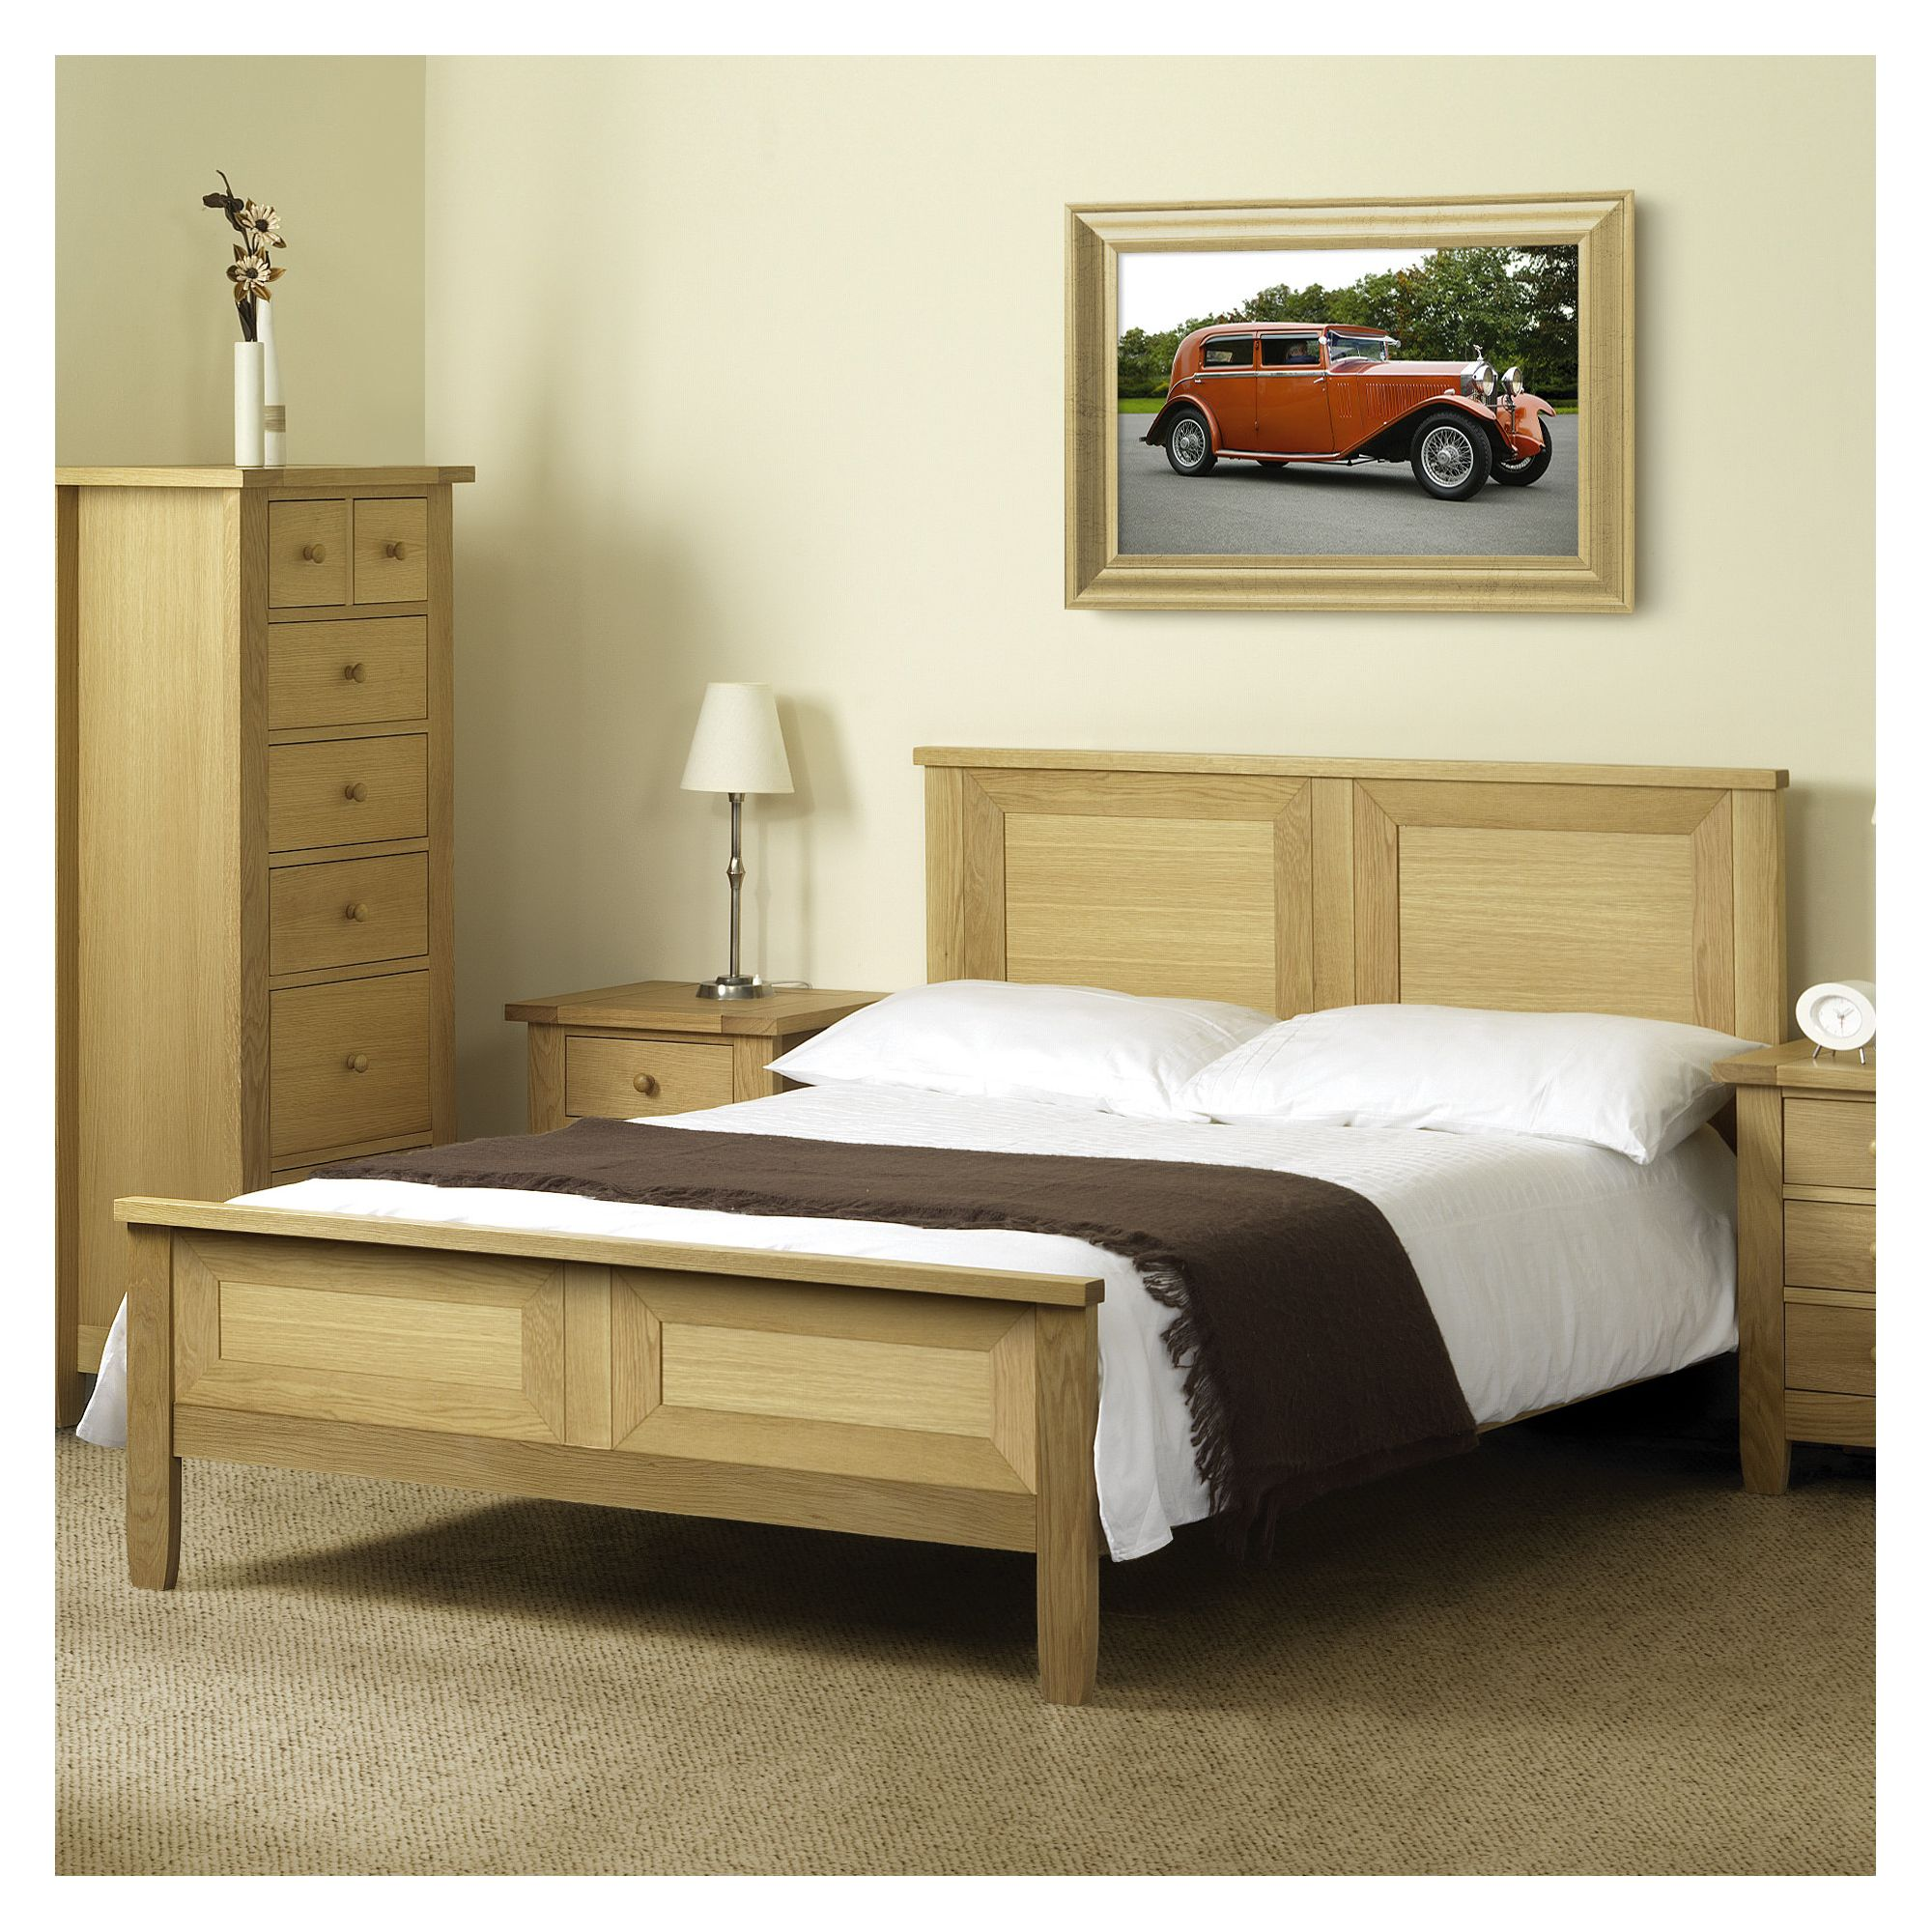 Home And Garden Furniture Julian Bowen Lyndhurst Bed Frame Kingsize Special Offers